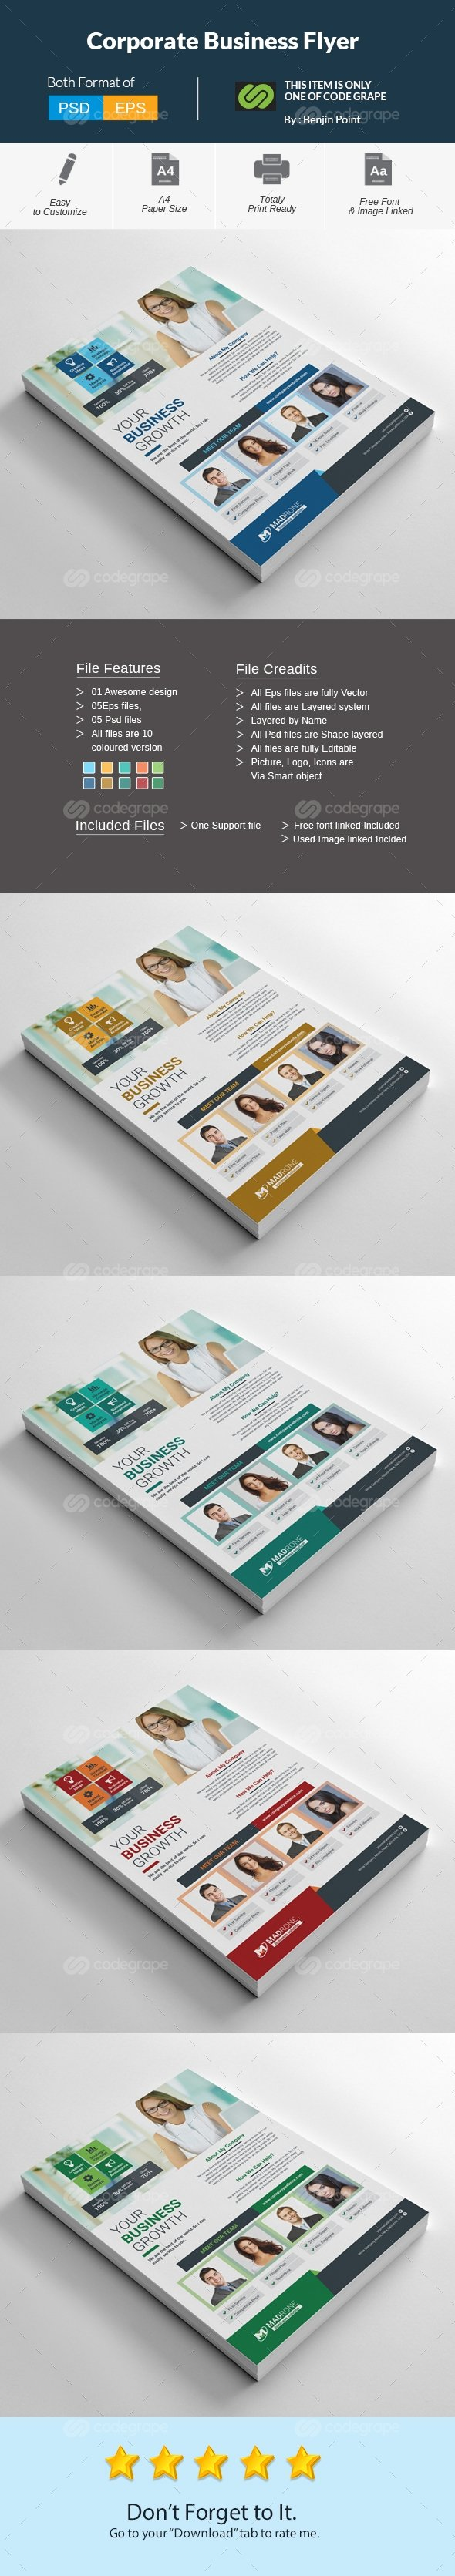 codegrape-9831-corporate-business-flyer